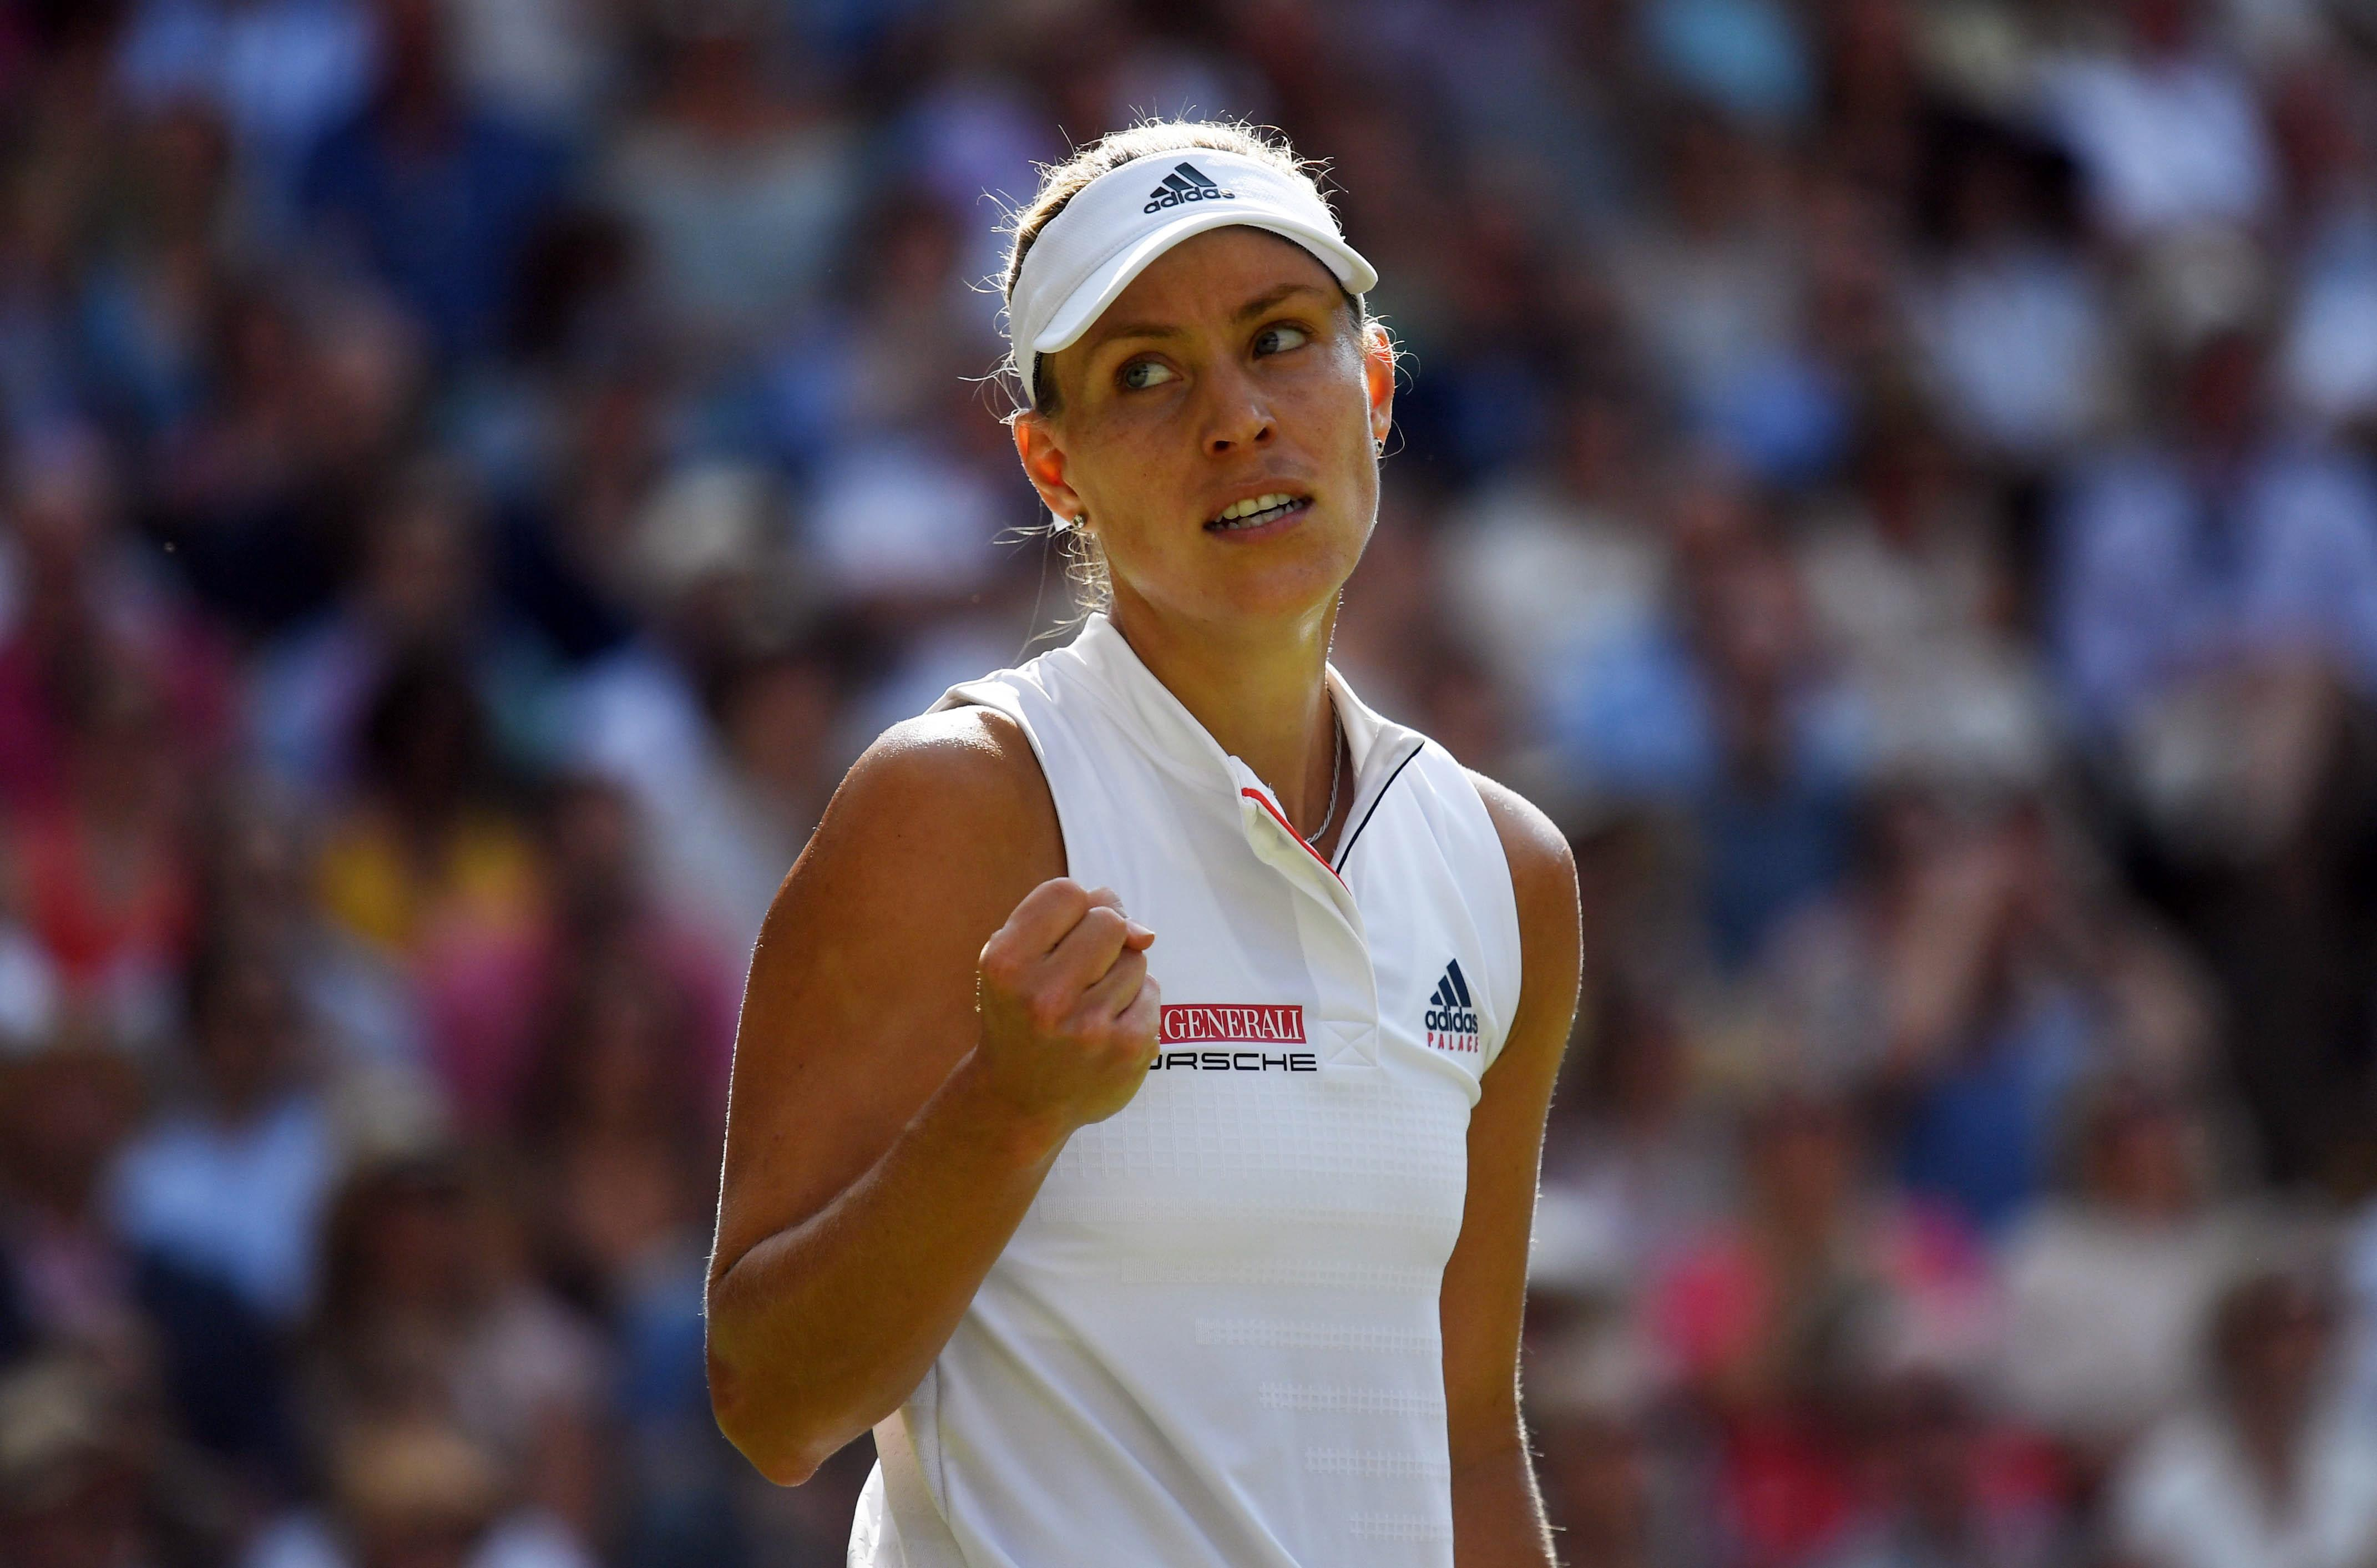 Angelique Kerber beat Serena Williams to be crowned Wimbledon champion